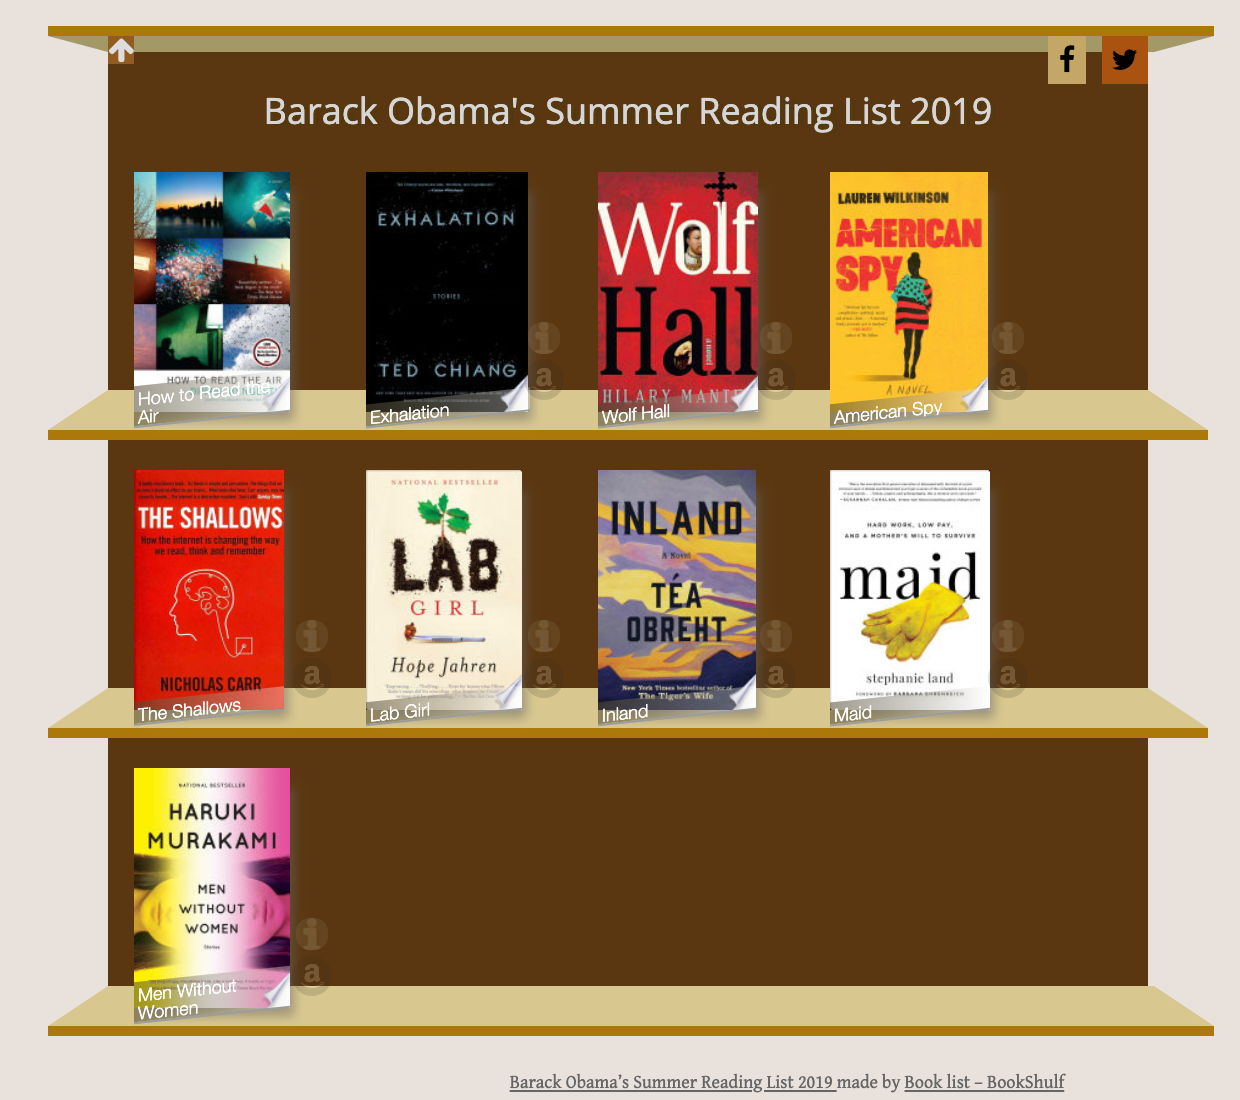 Barack Obama's Summer Reading List 2019